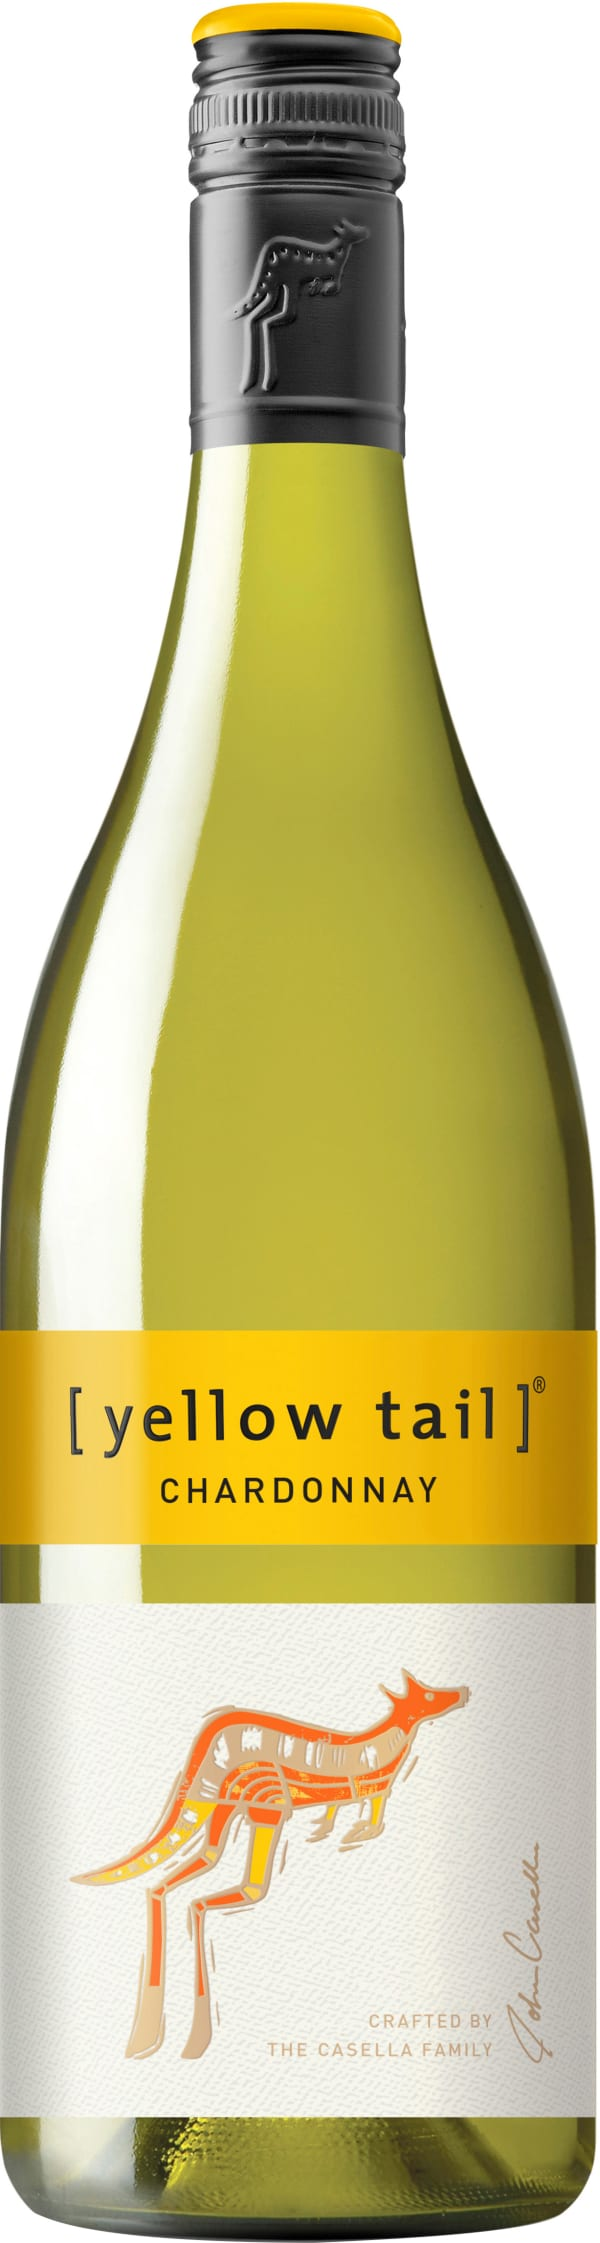 Yellow Tail Chardonnay 2019